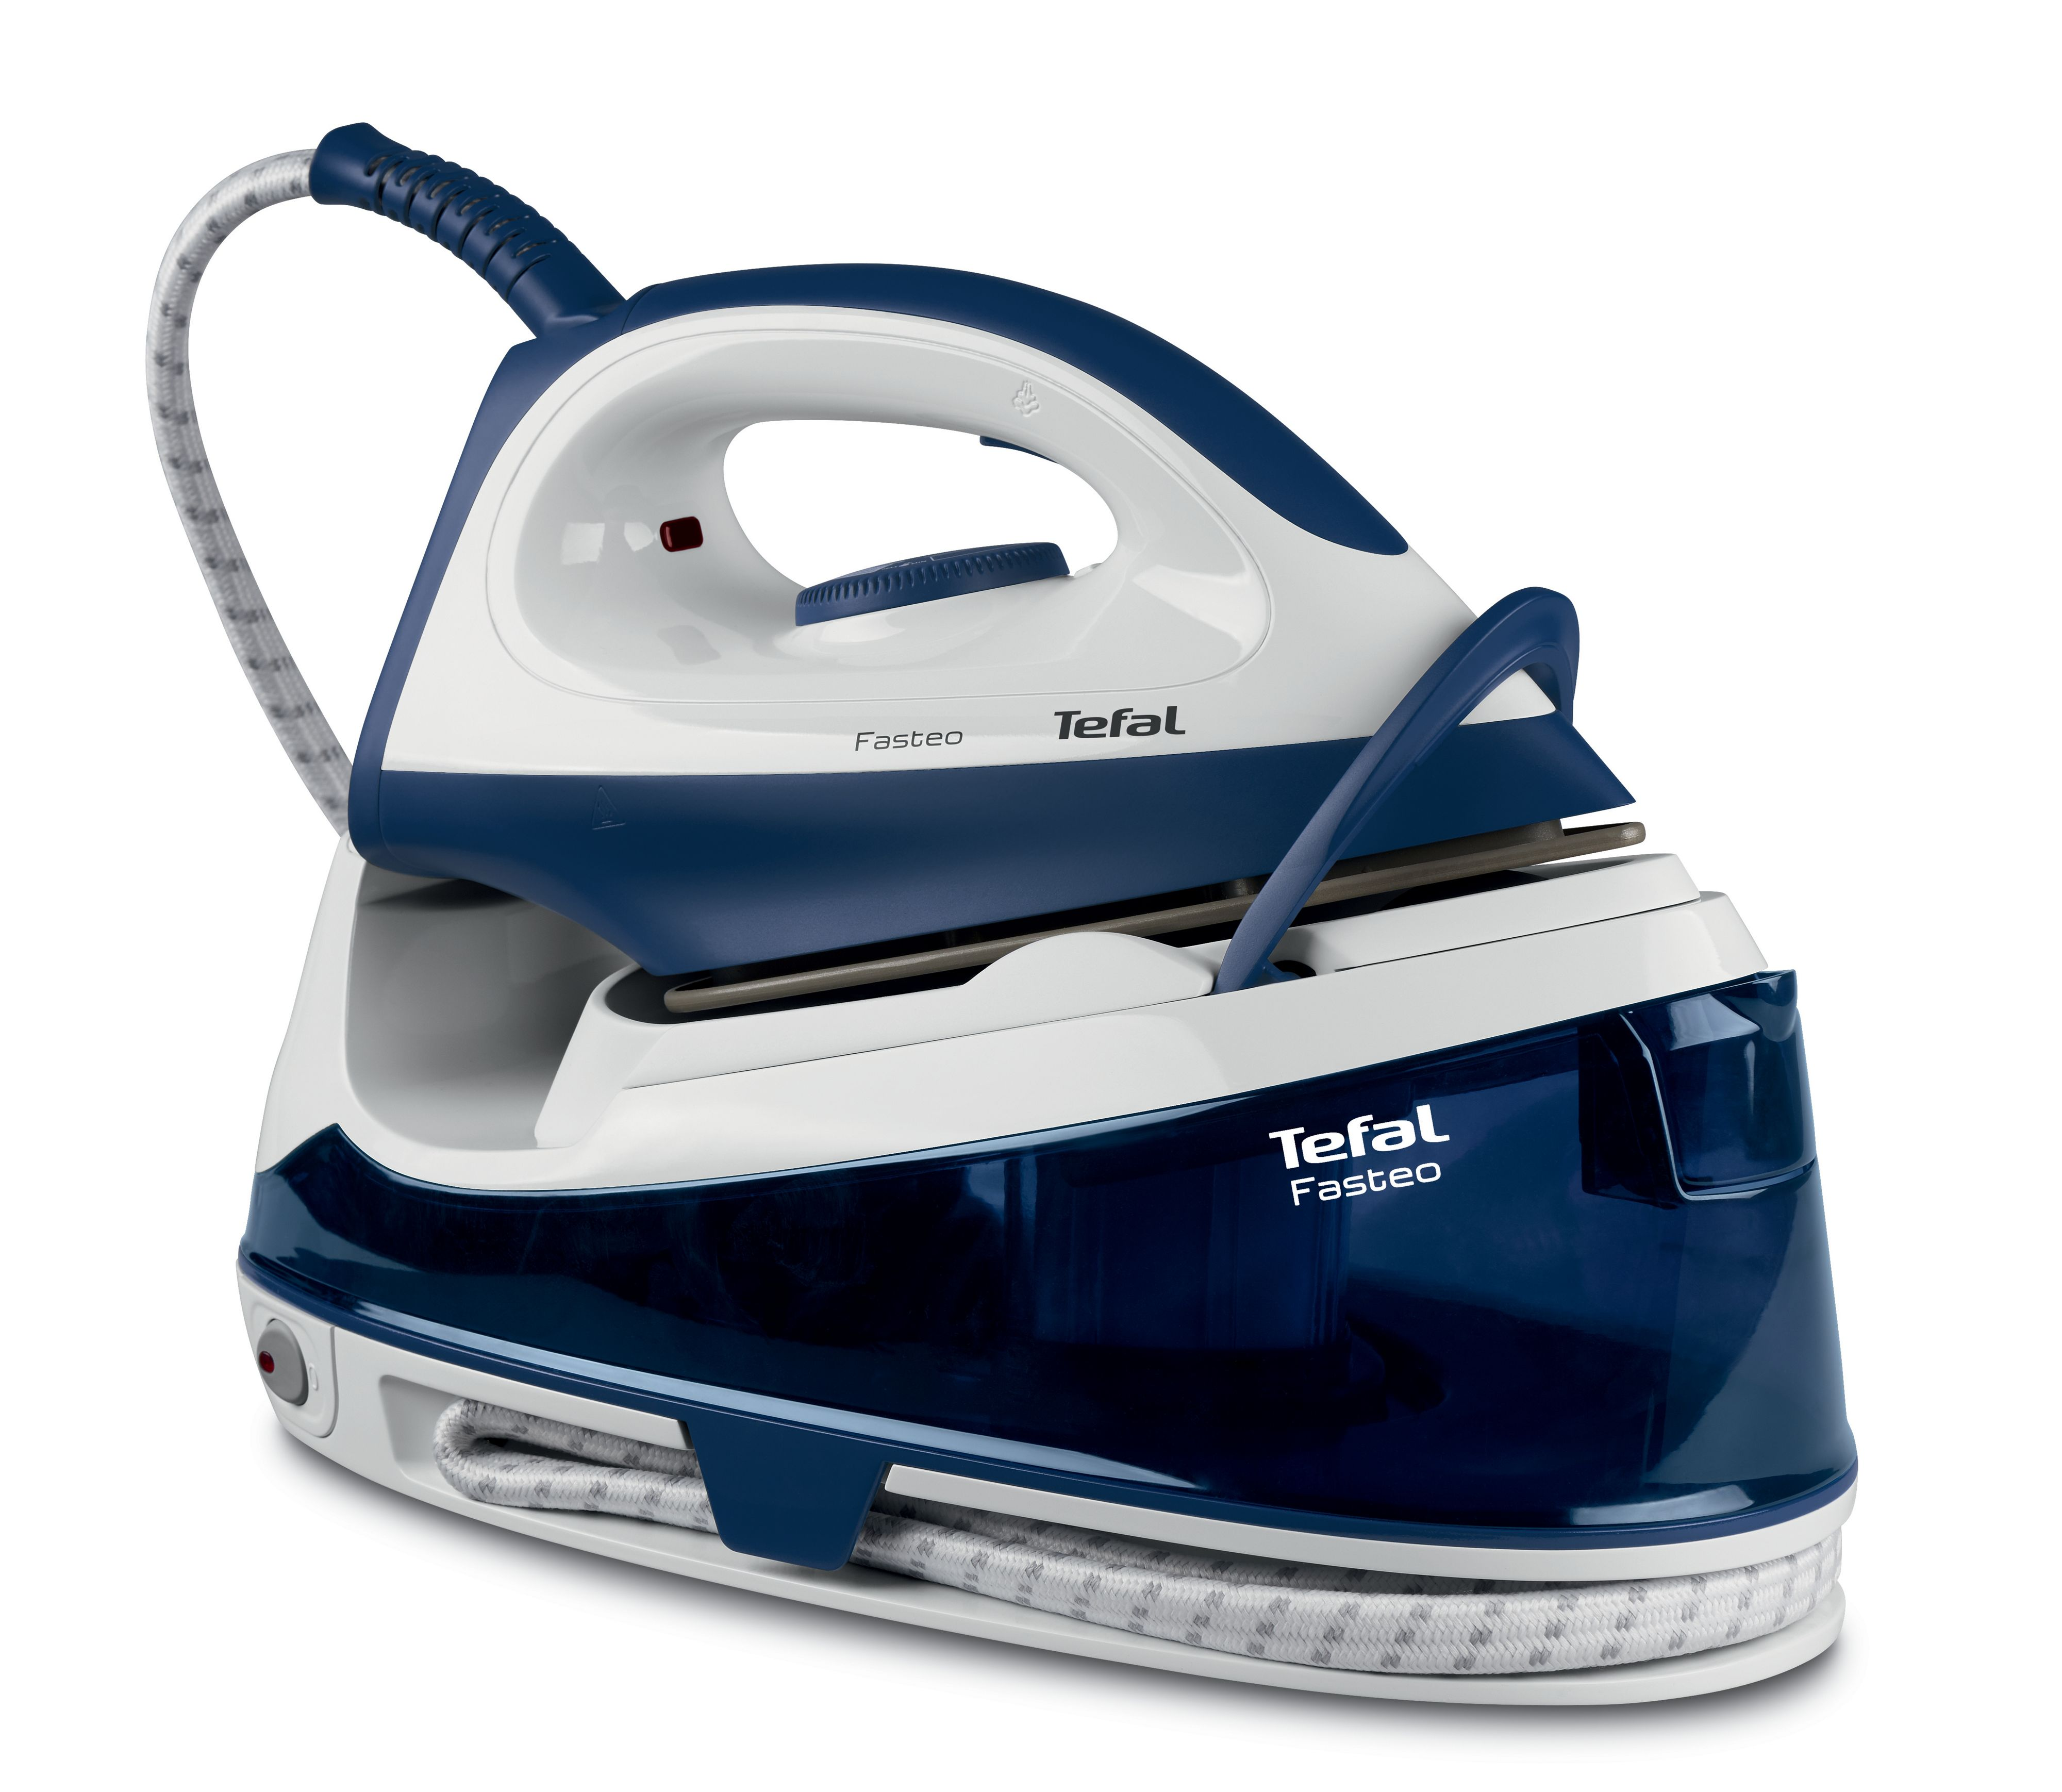 Tefal Fasteo Steam Generator Iron SV6040 Blue